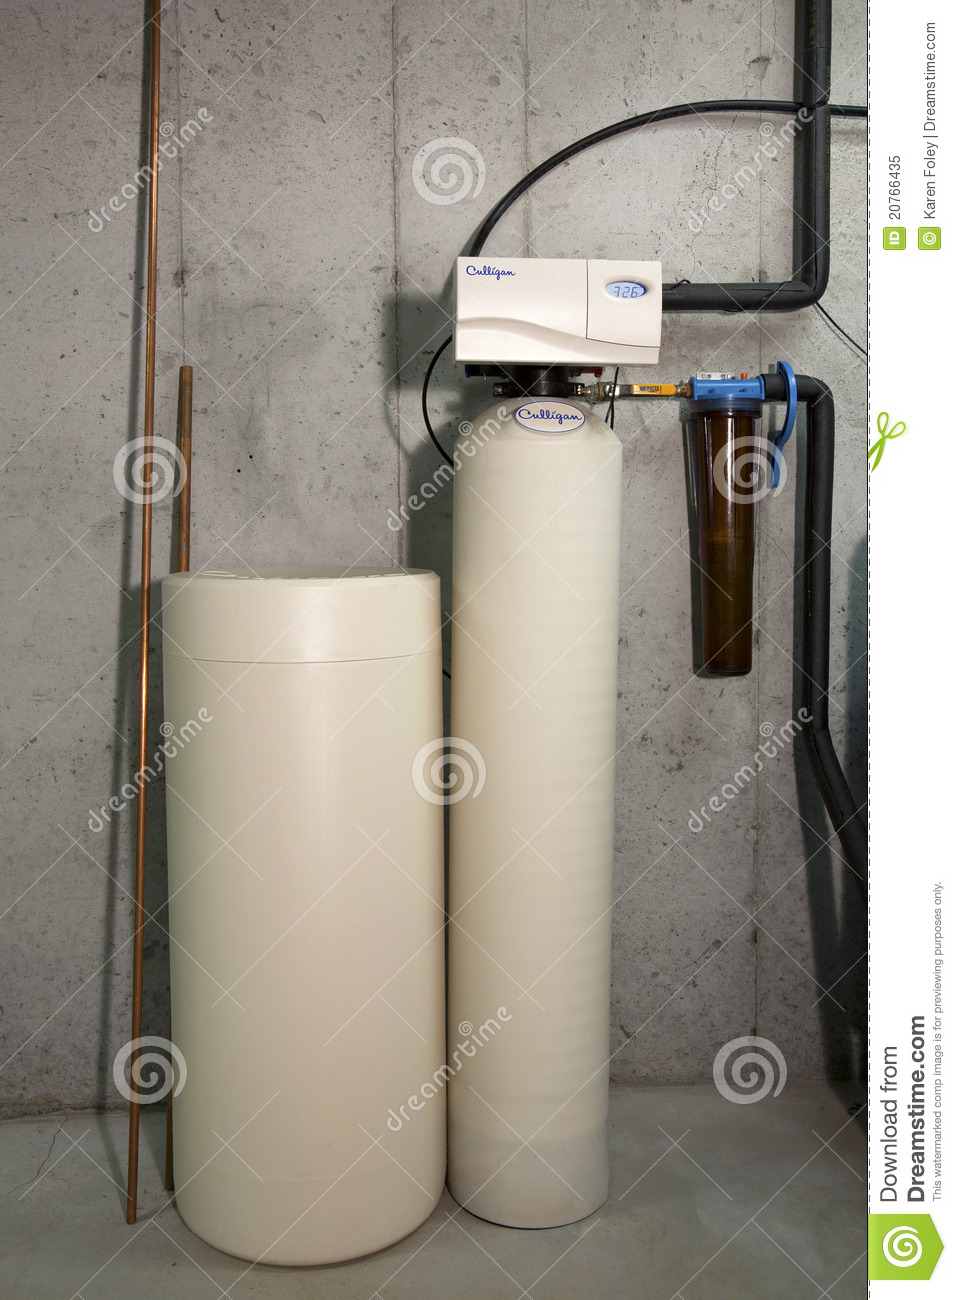 Culligan Water Softener Editorial Image Image 20766435